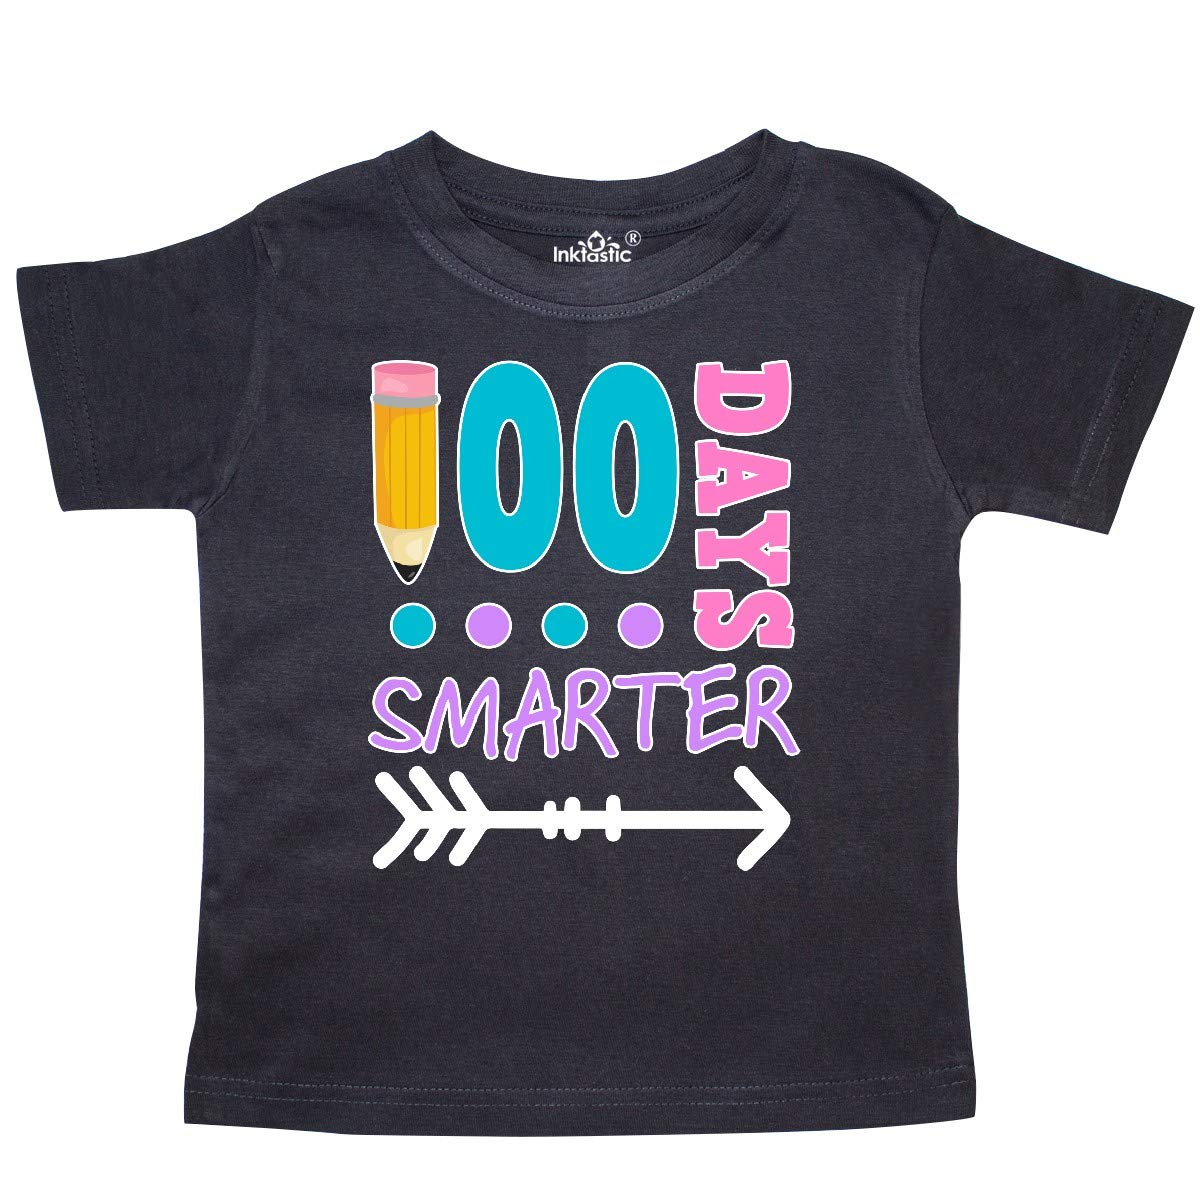 inktastic 100 Days Smarter with Arrow Toddler T-Shirt